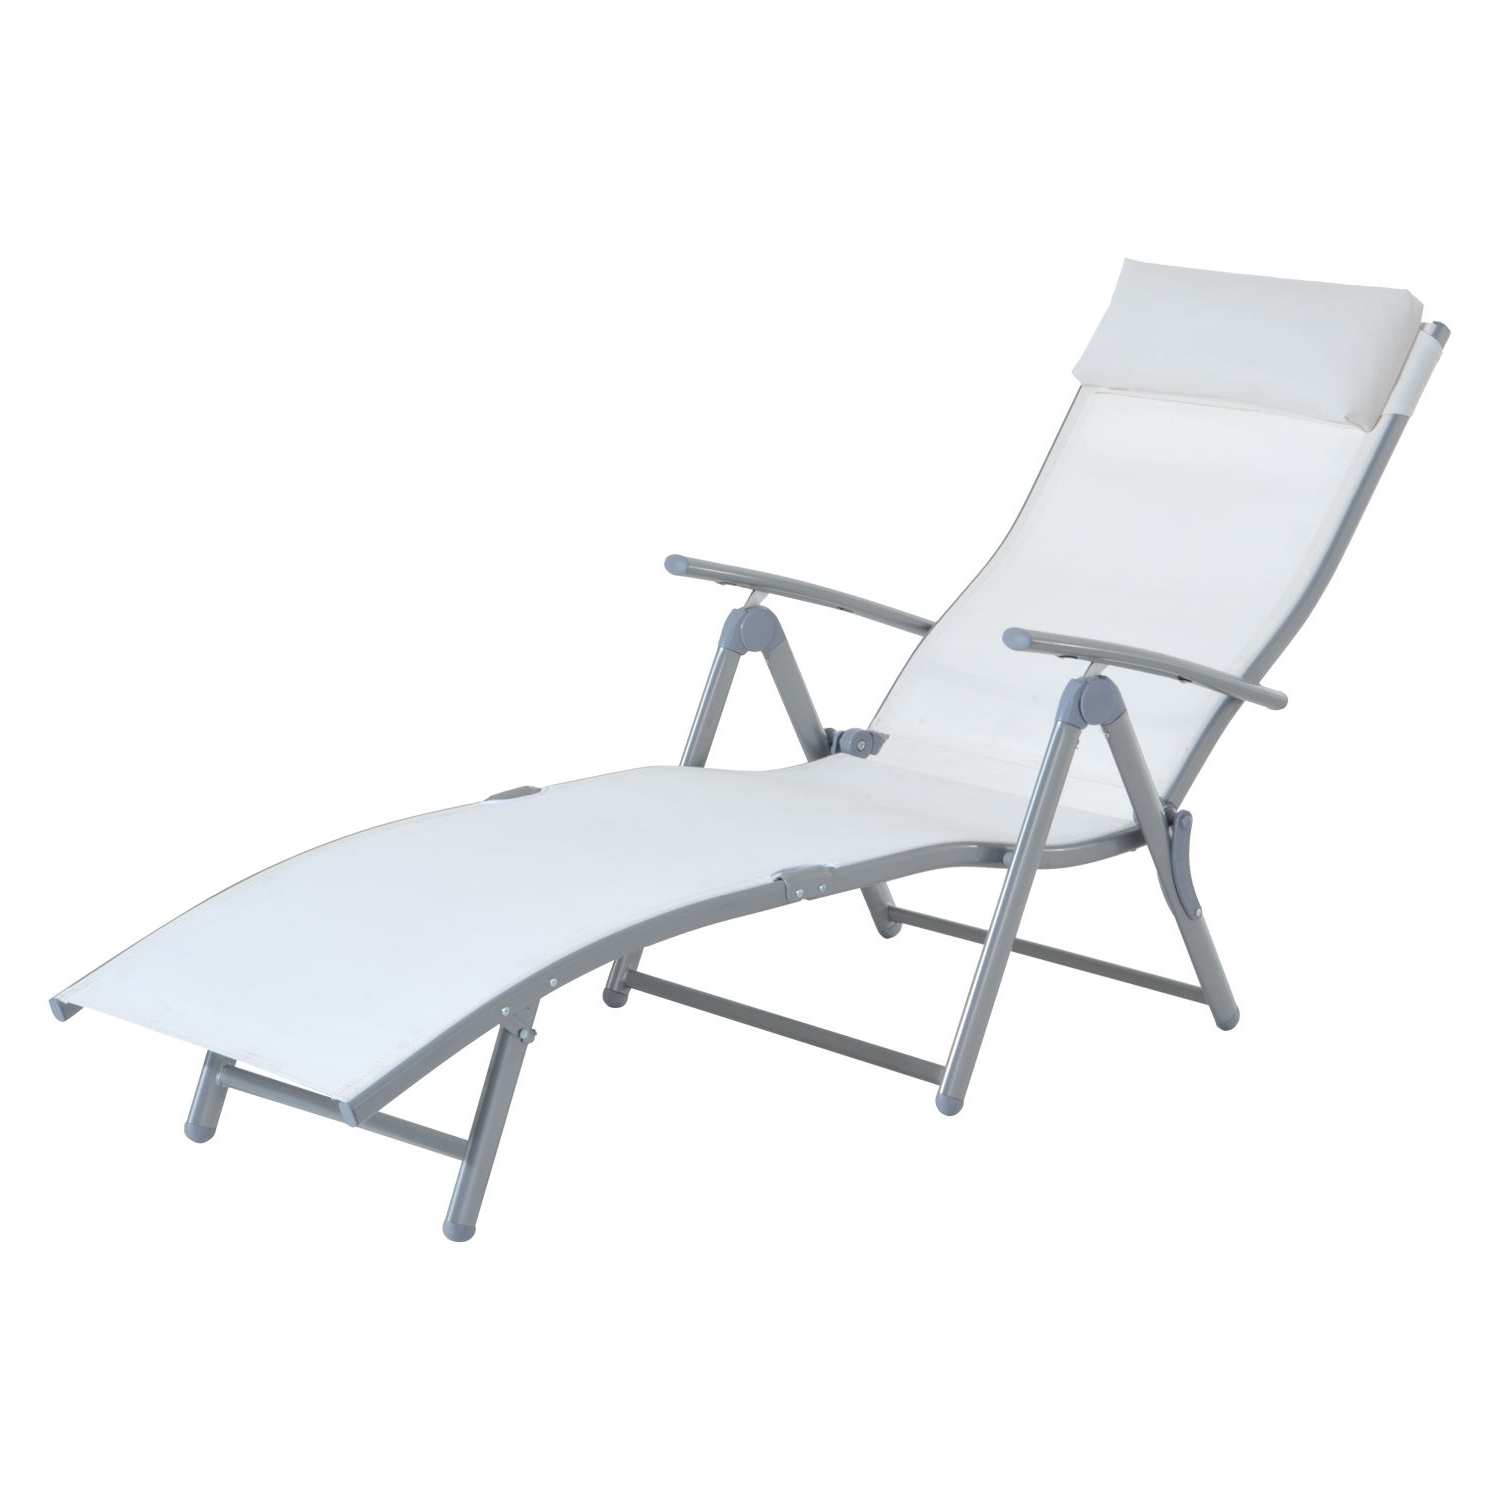 Trendy Outdoor : Lowes Chaise Lounge Indoor Outdoor Chaise Lounge Chairs For Vinyl Chaise Lounge Chairs (View 5 of 15)